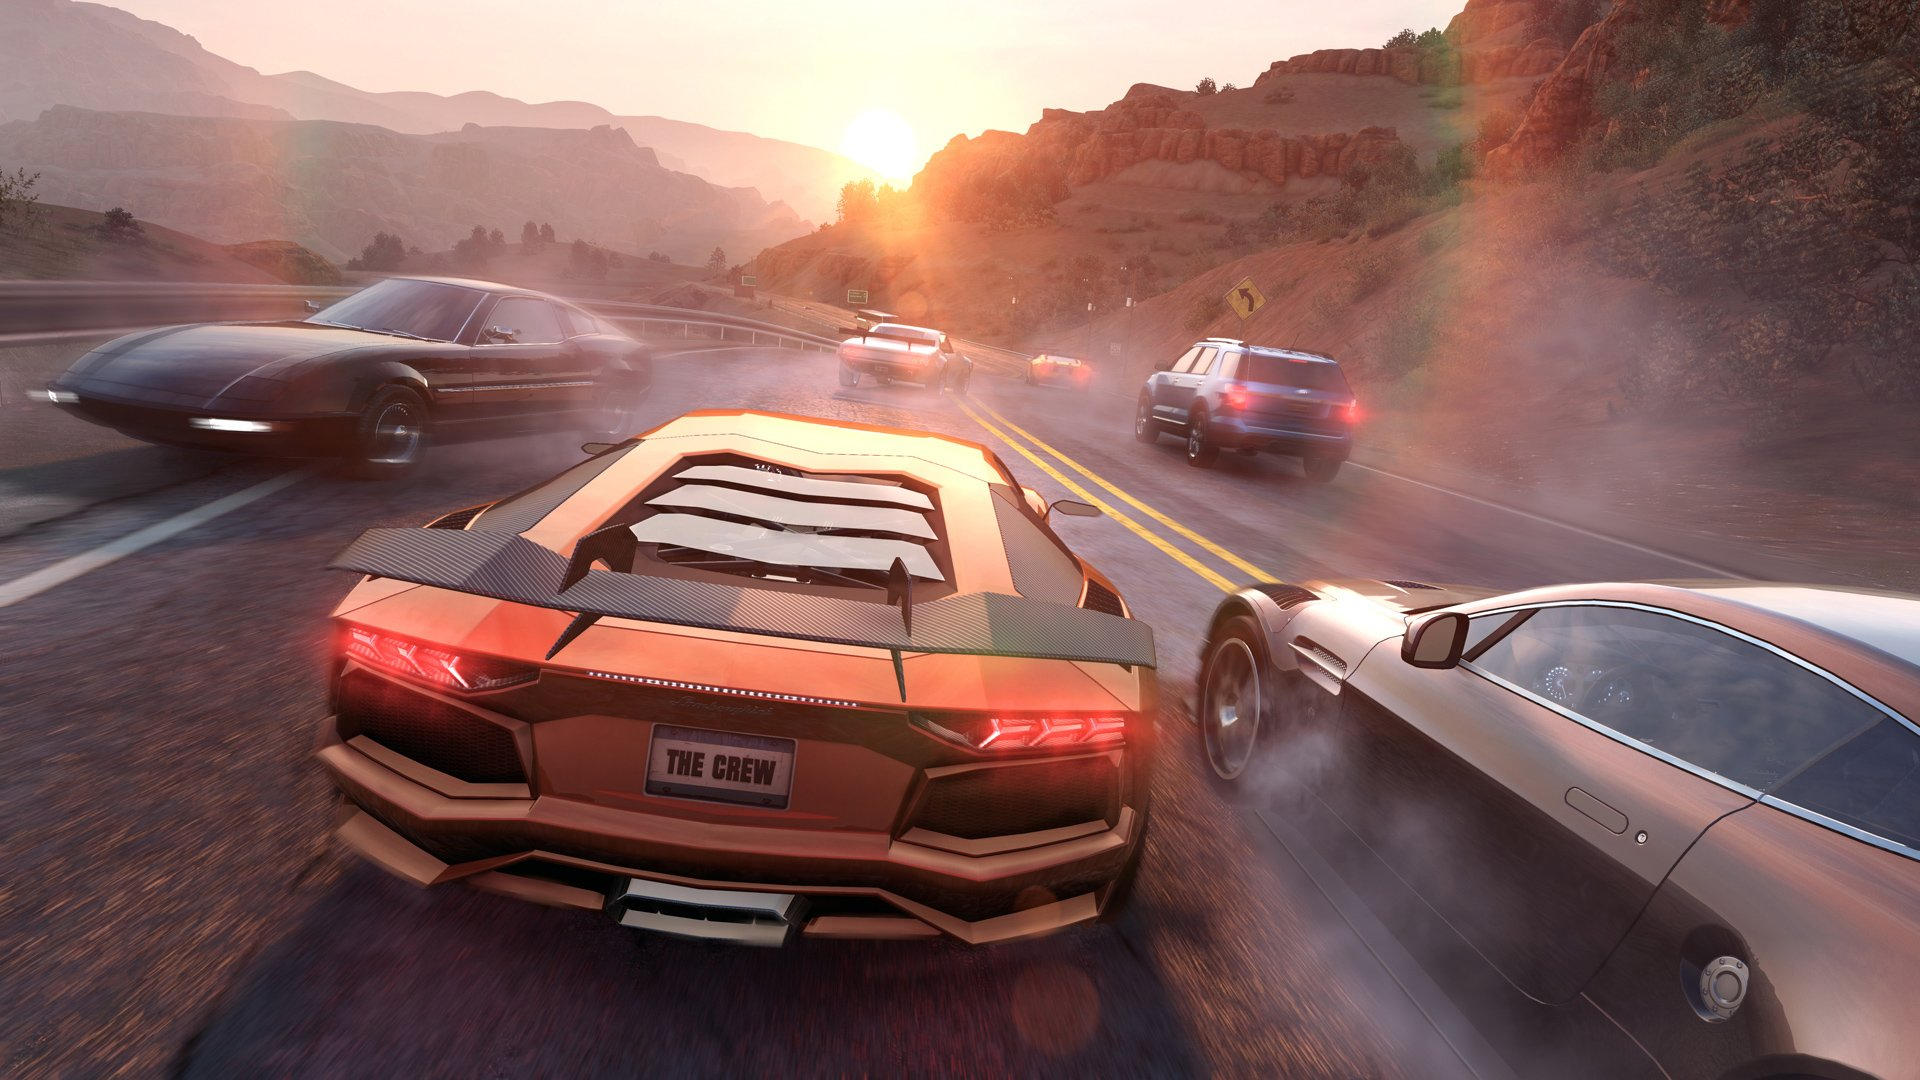 You can and should download The Crew for free on PC